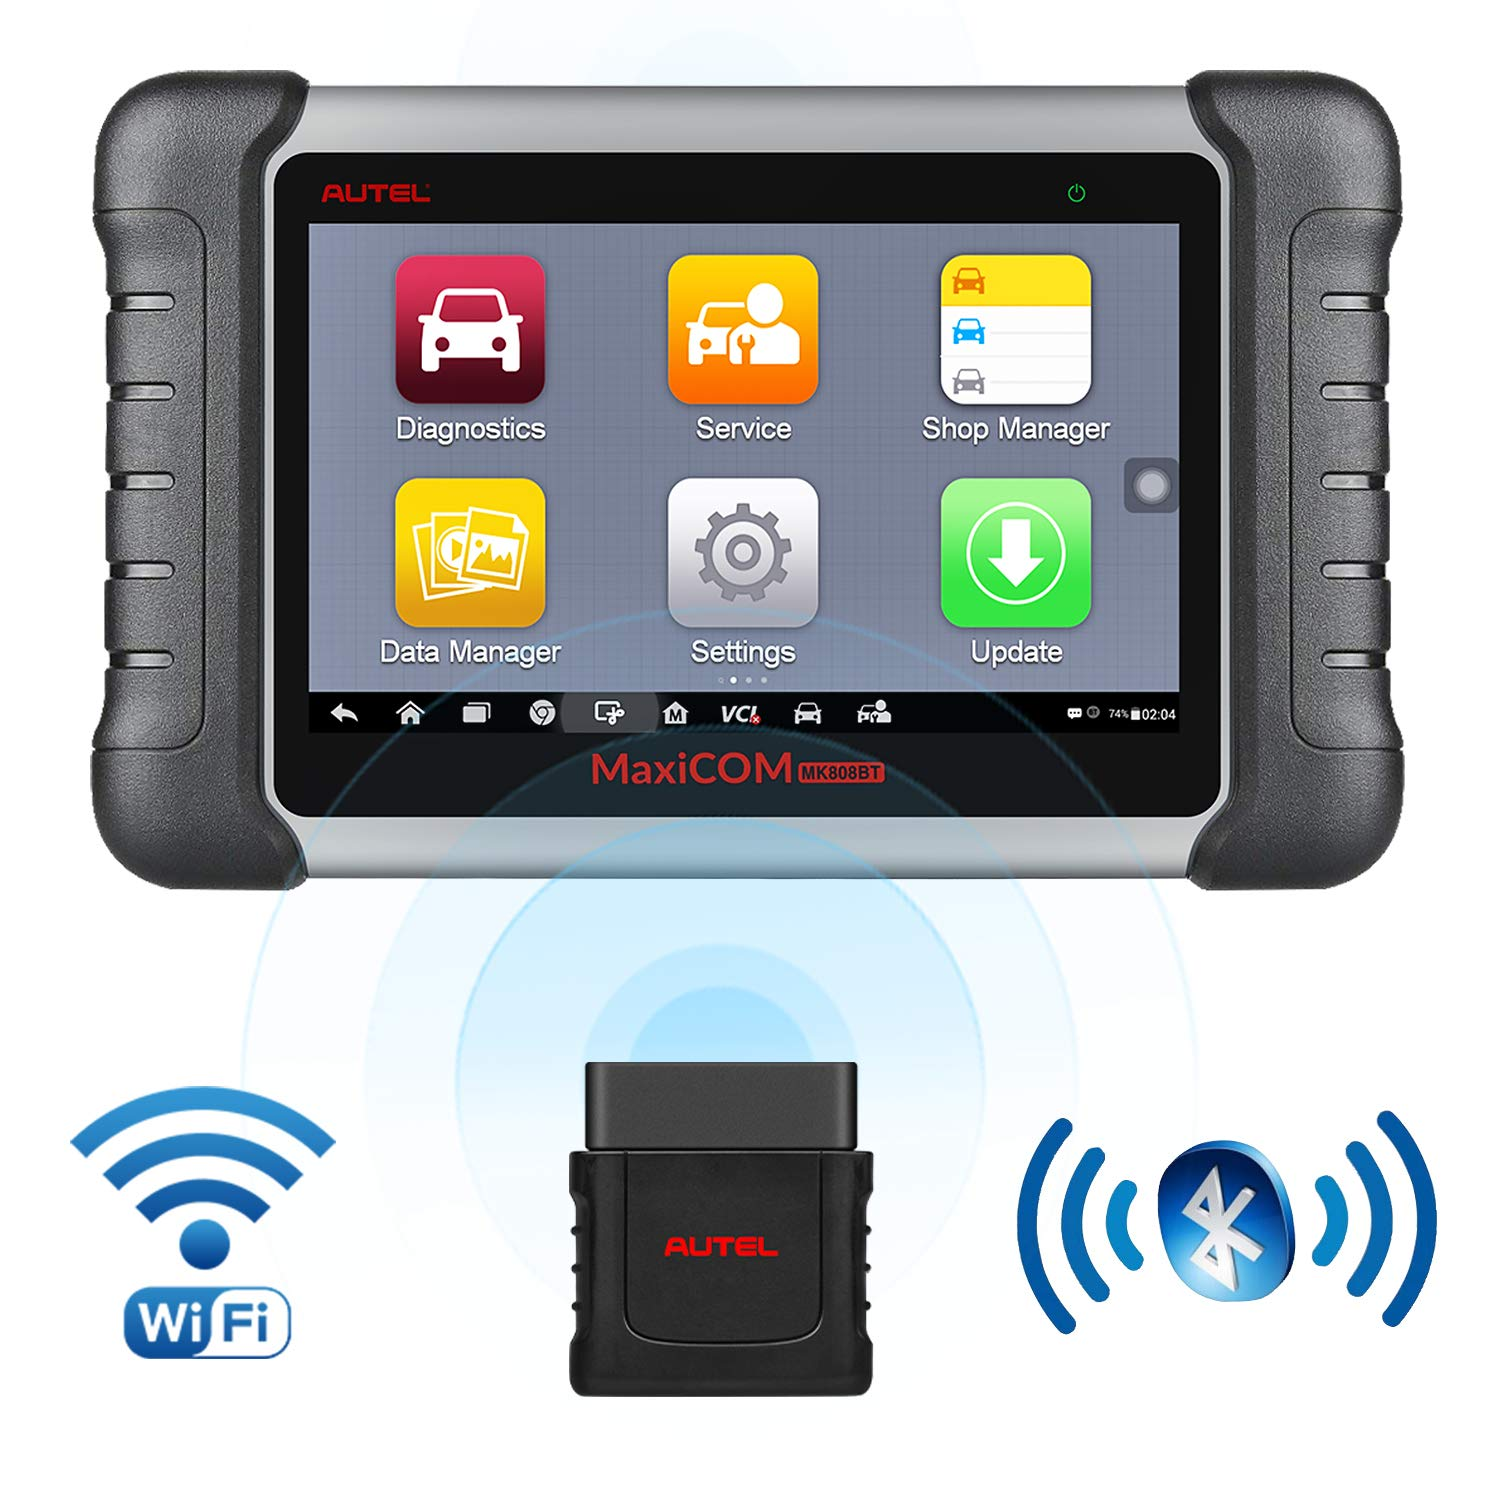 Autel OBD2 Scanner MaxiCOM MK808BT Diagnostic Tool, Upgraded Version of MK808, with MaxiVCI Supports Full System Scan & IMMO/EPB/SAS/BMS/TPMS/DPF by Autel (Image #1)